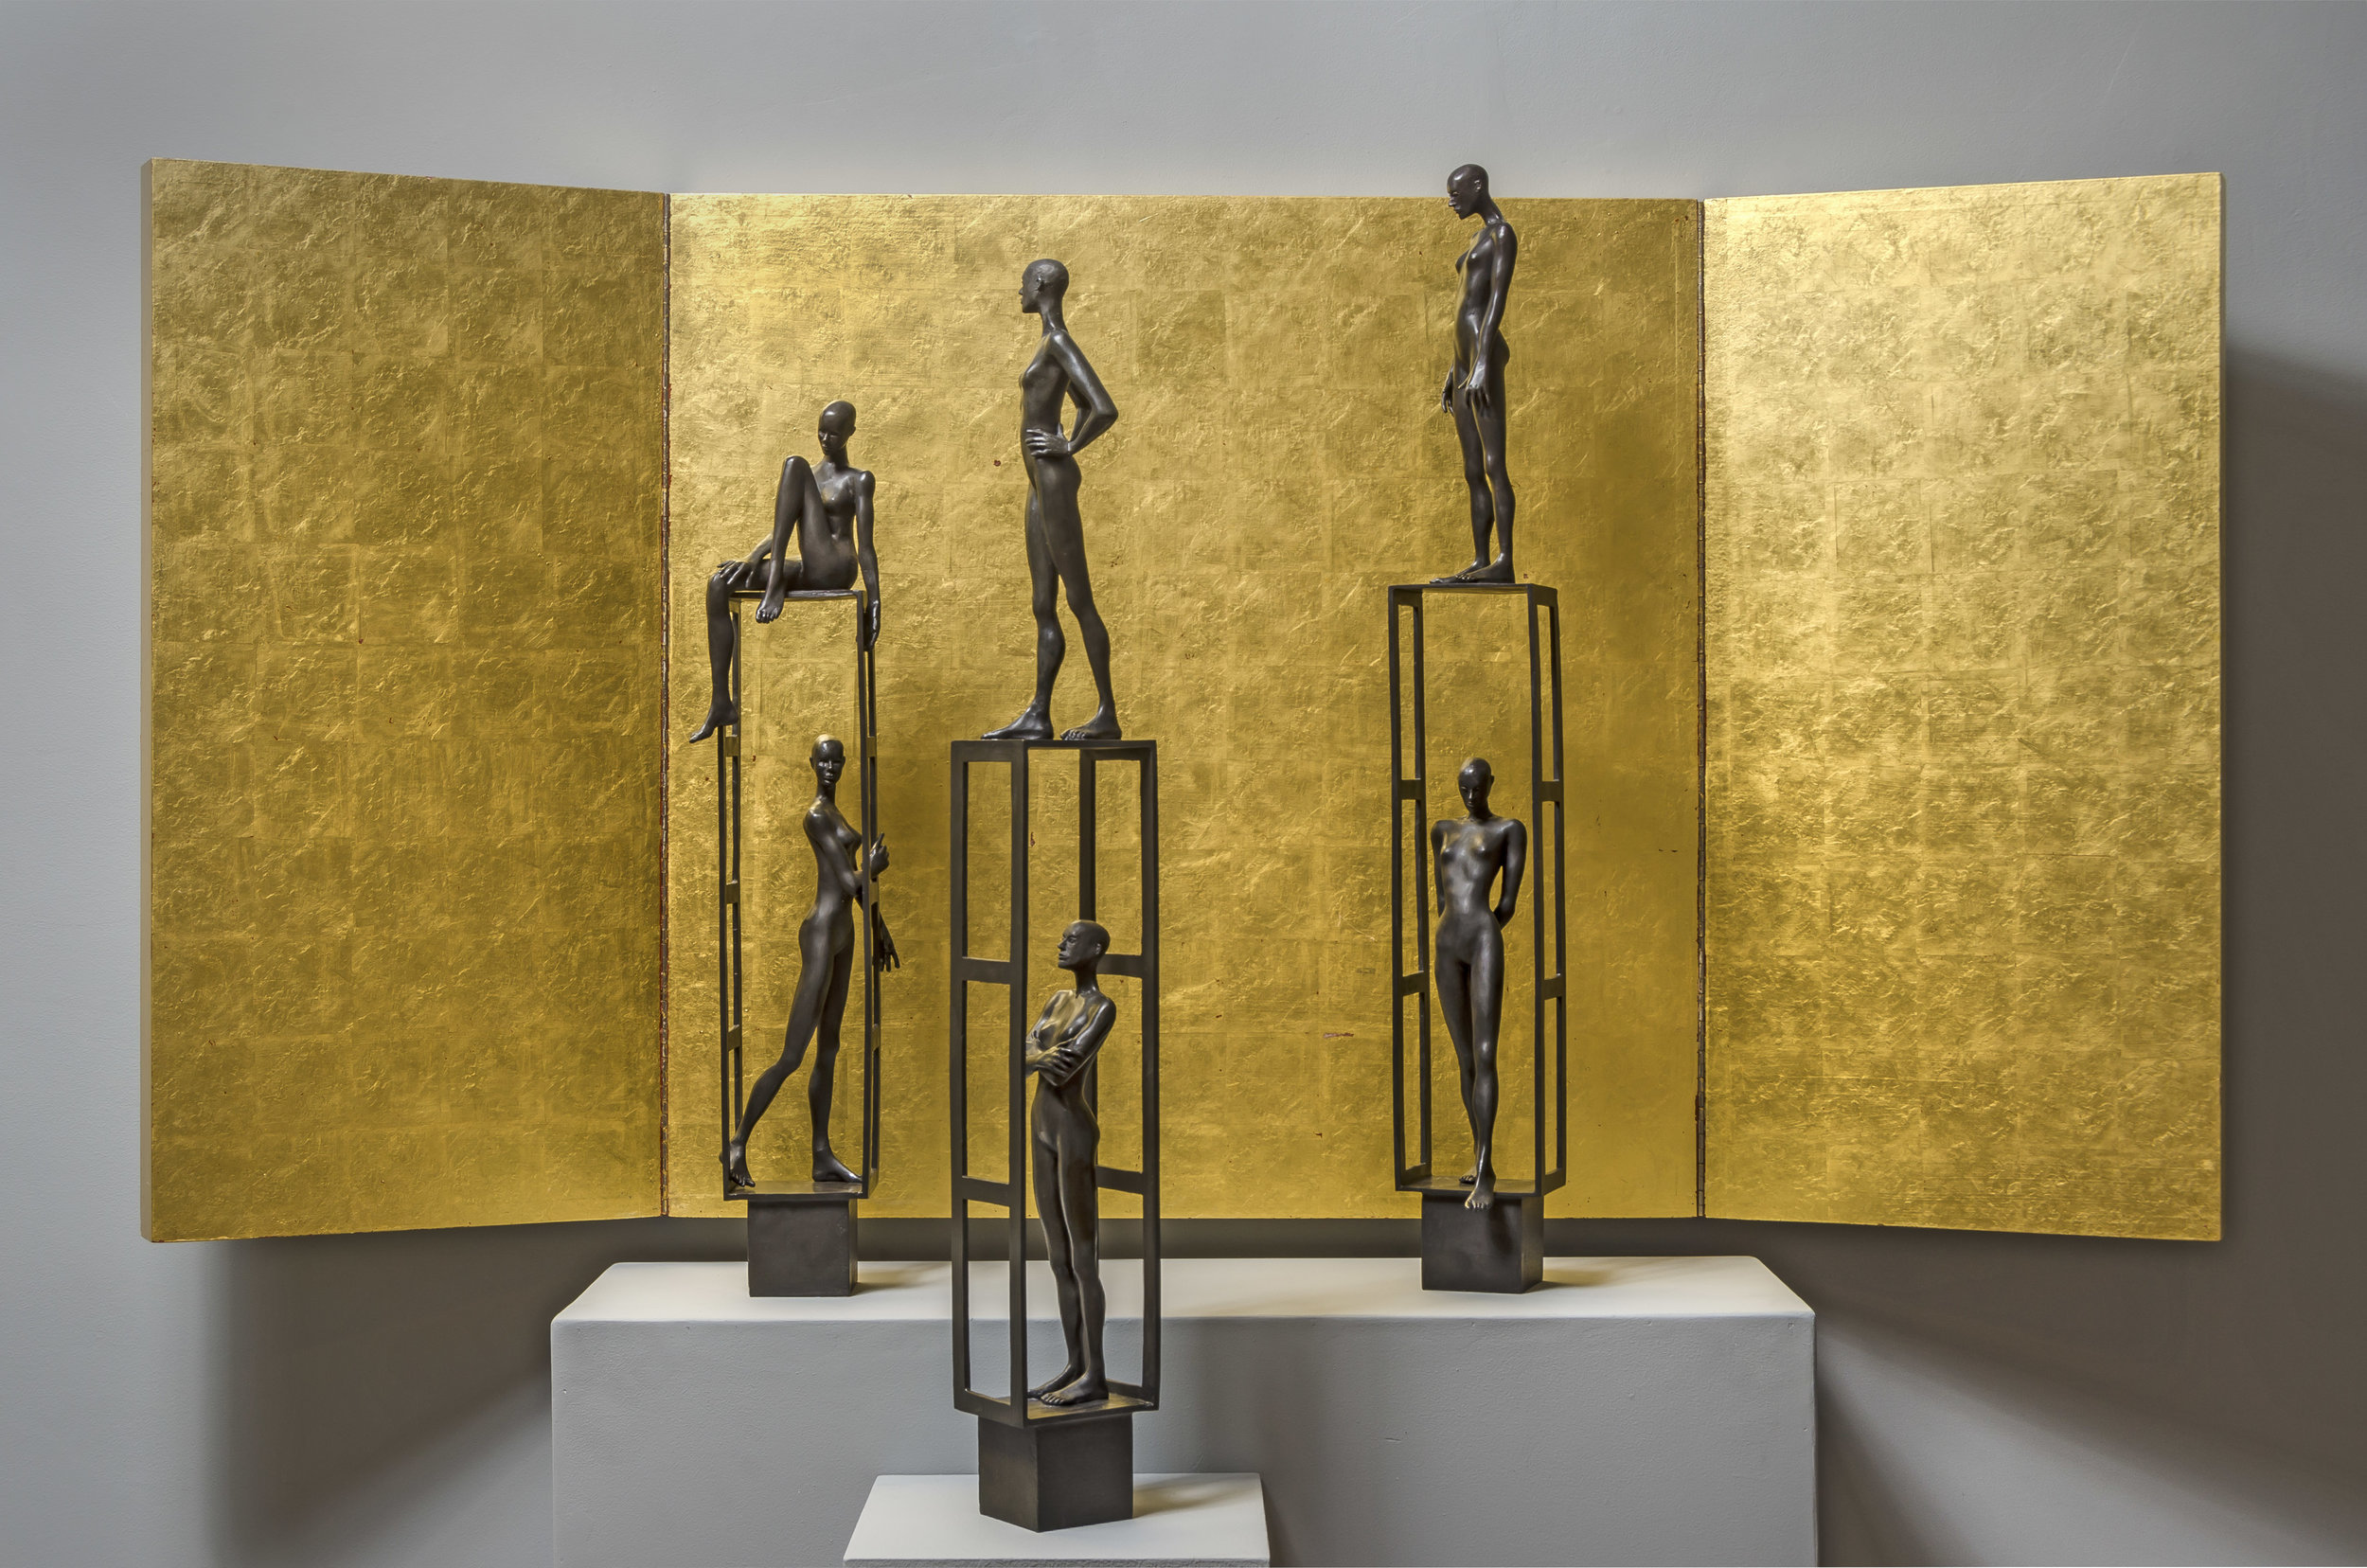 Estructura 1 ,  Estructura 2 , and  Estructura 3 , 2019 bronze in front of a wooden and gold leaf screen